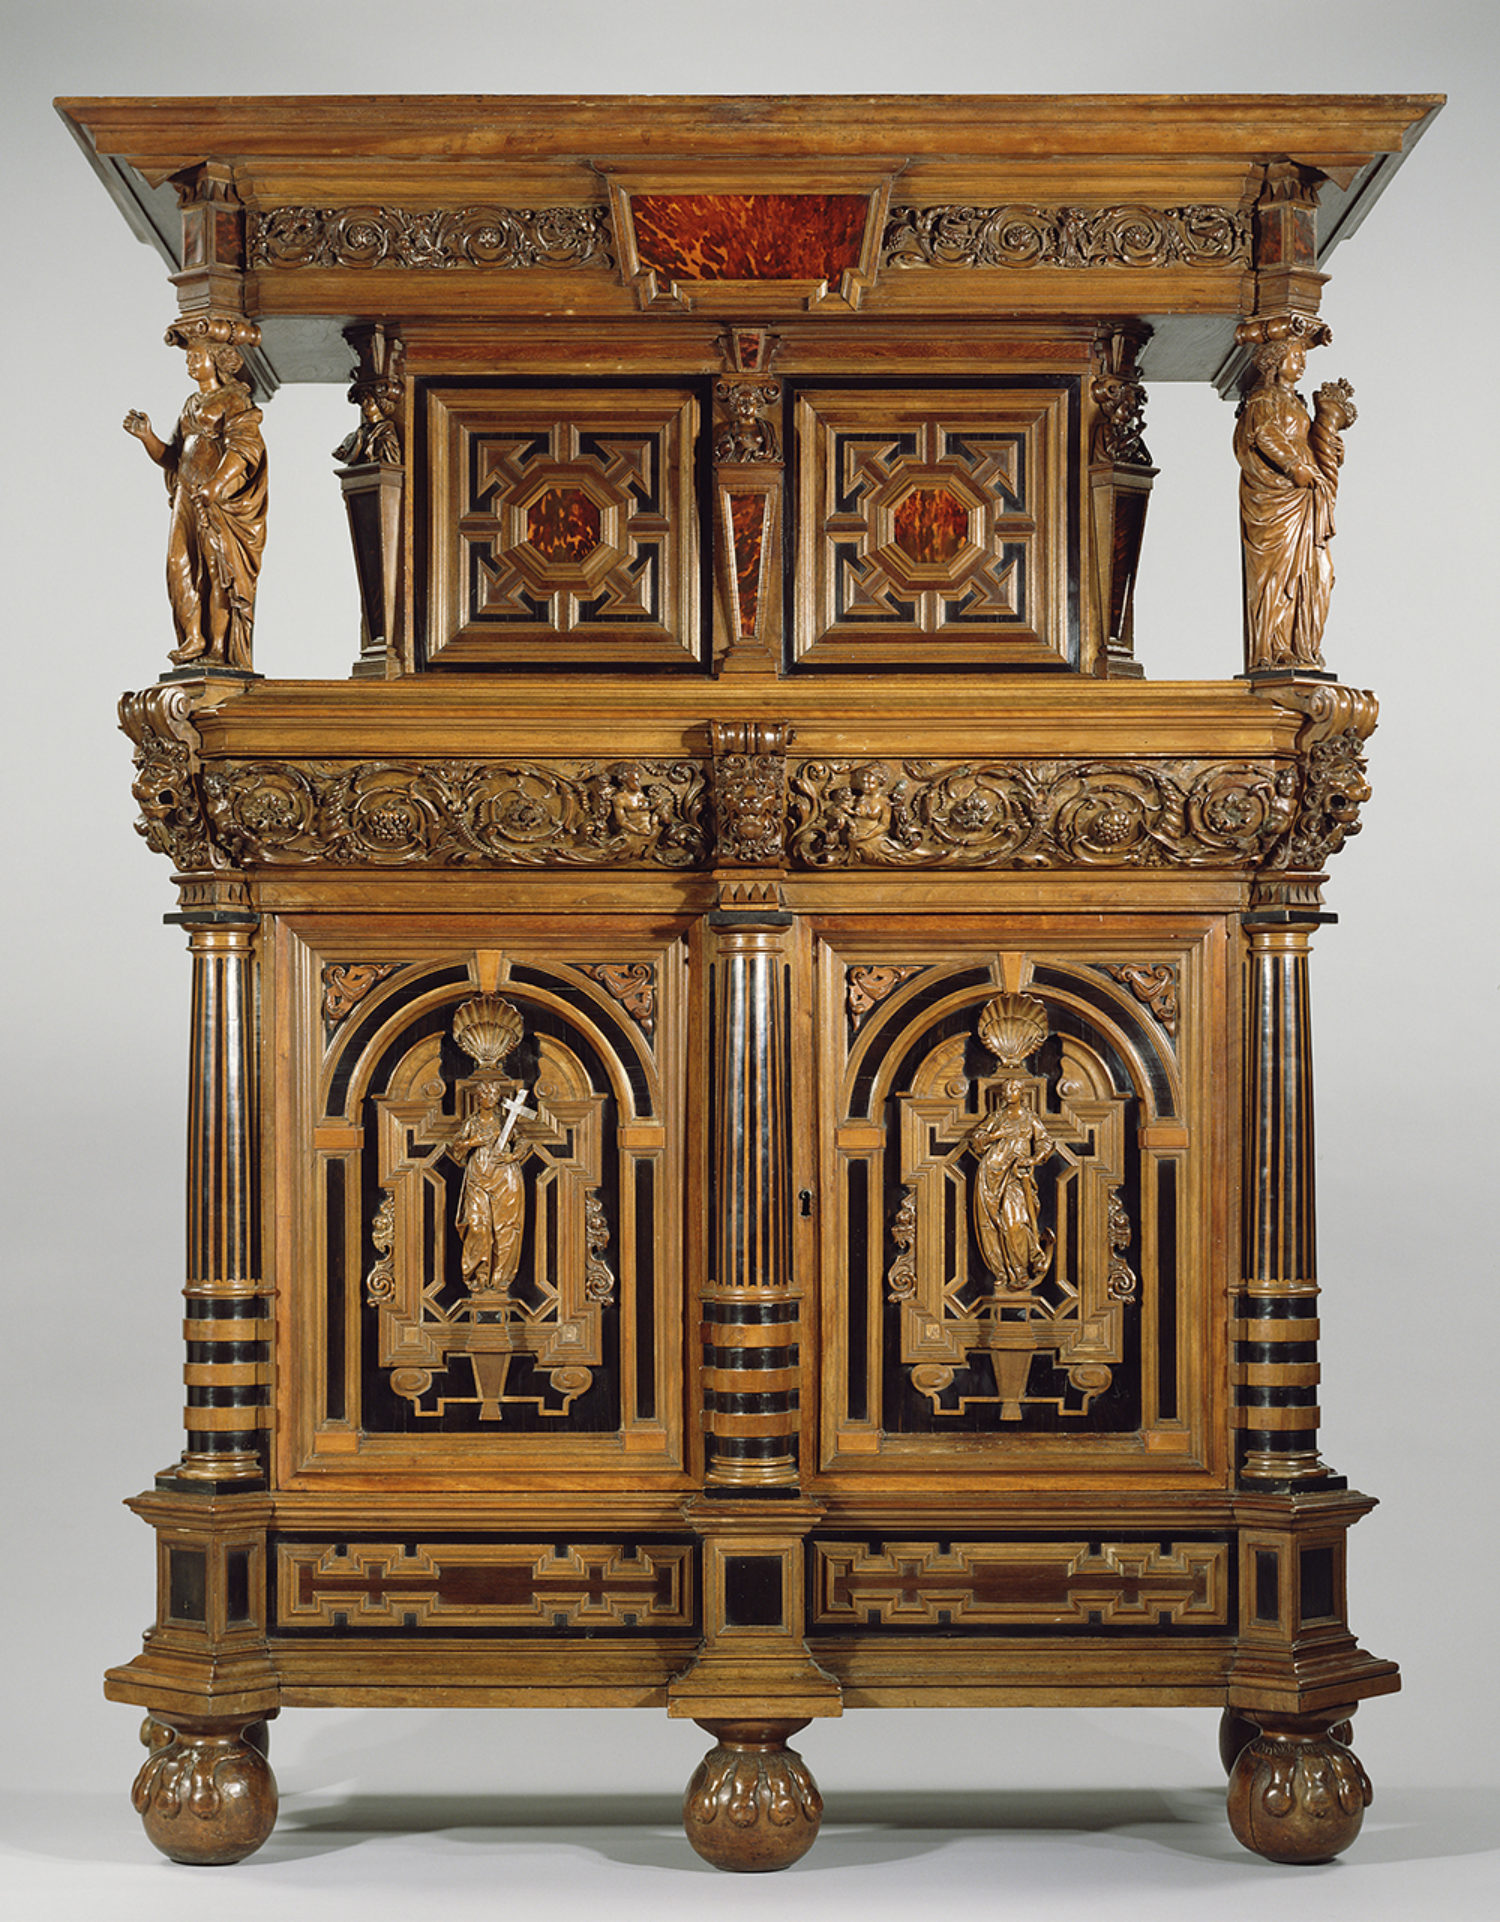 17th Century Flemish Display Cabinet (toonkast)